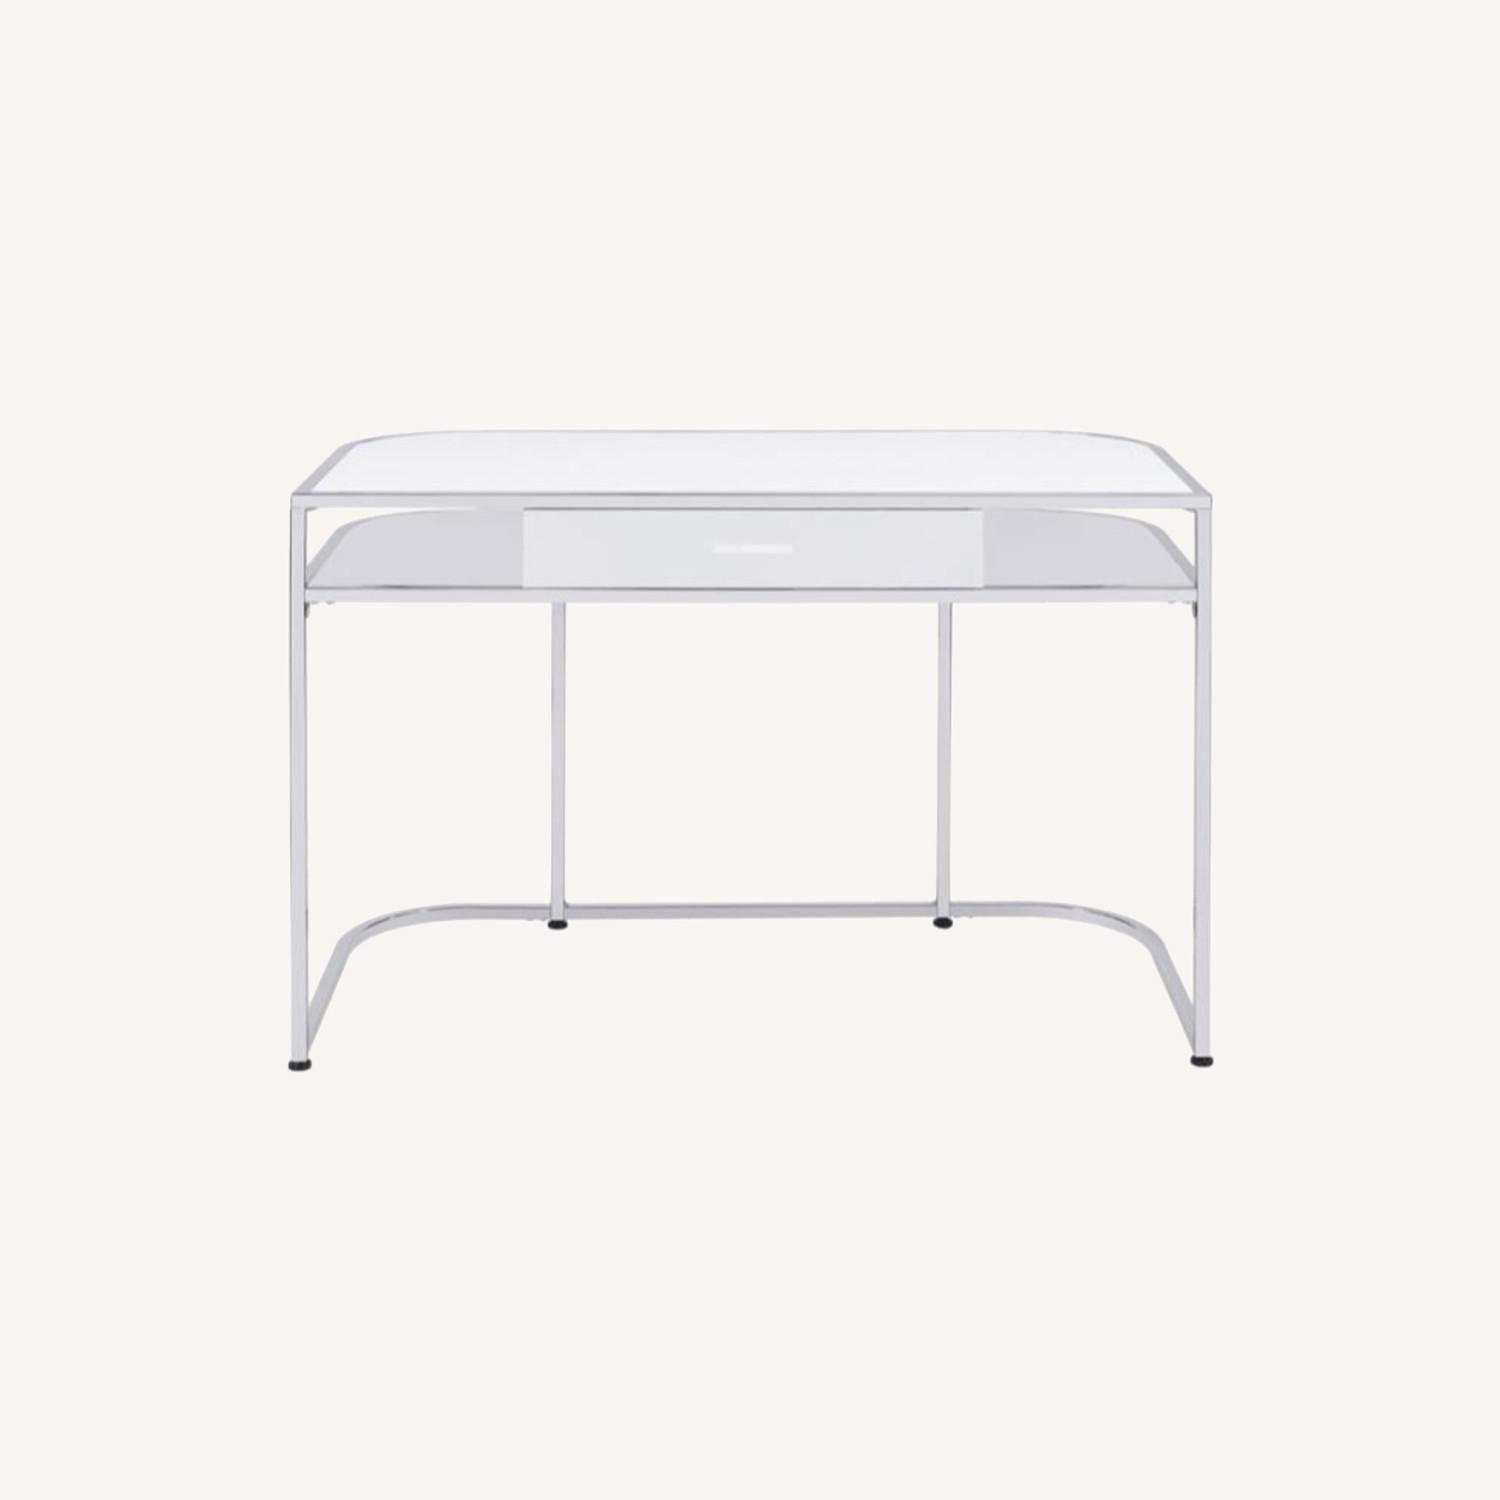 Writing Desk In White High Gloss Lacquer Finish - image-12